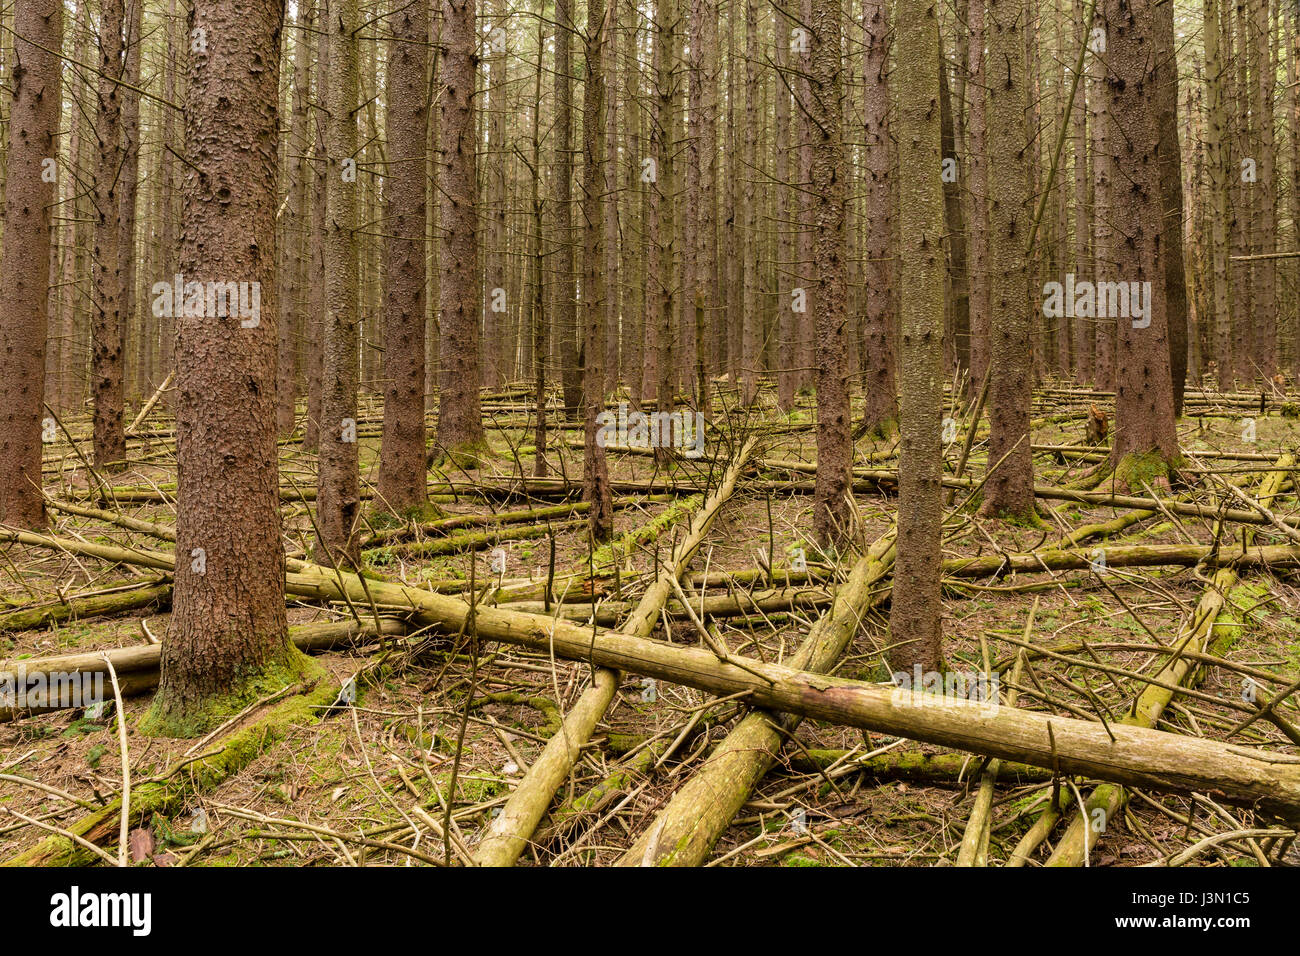 A dense forest of Norway Spruce trees, littered with fallen trees, on the Kelly Hollow Loop trail in the Catskills - Stock Image